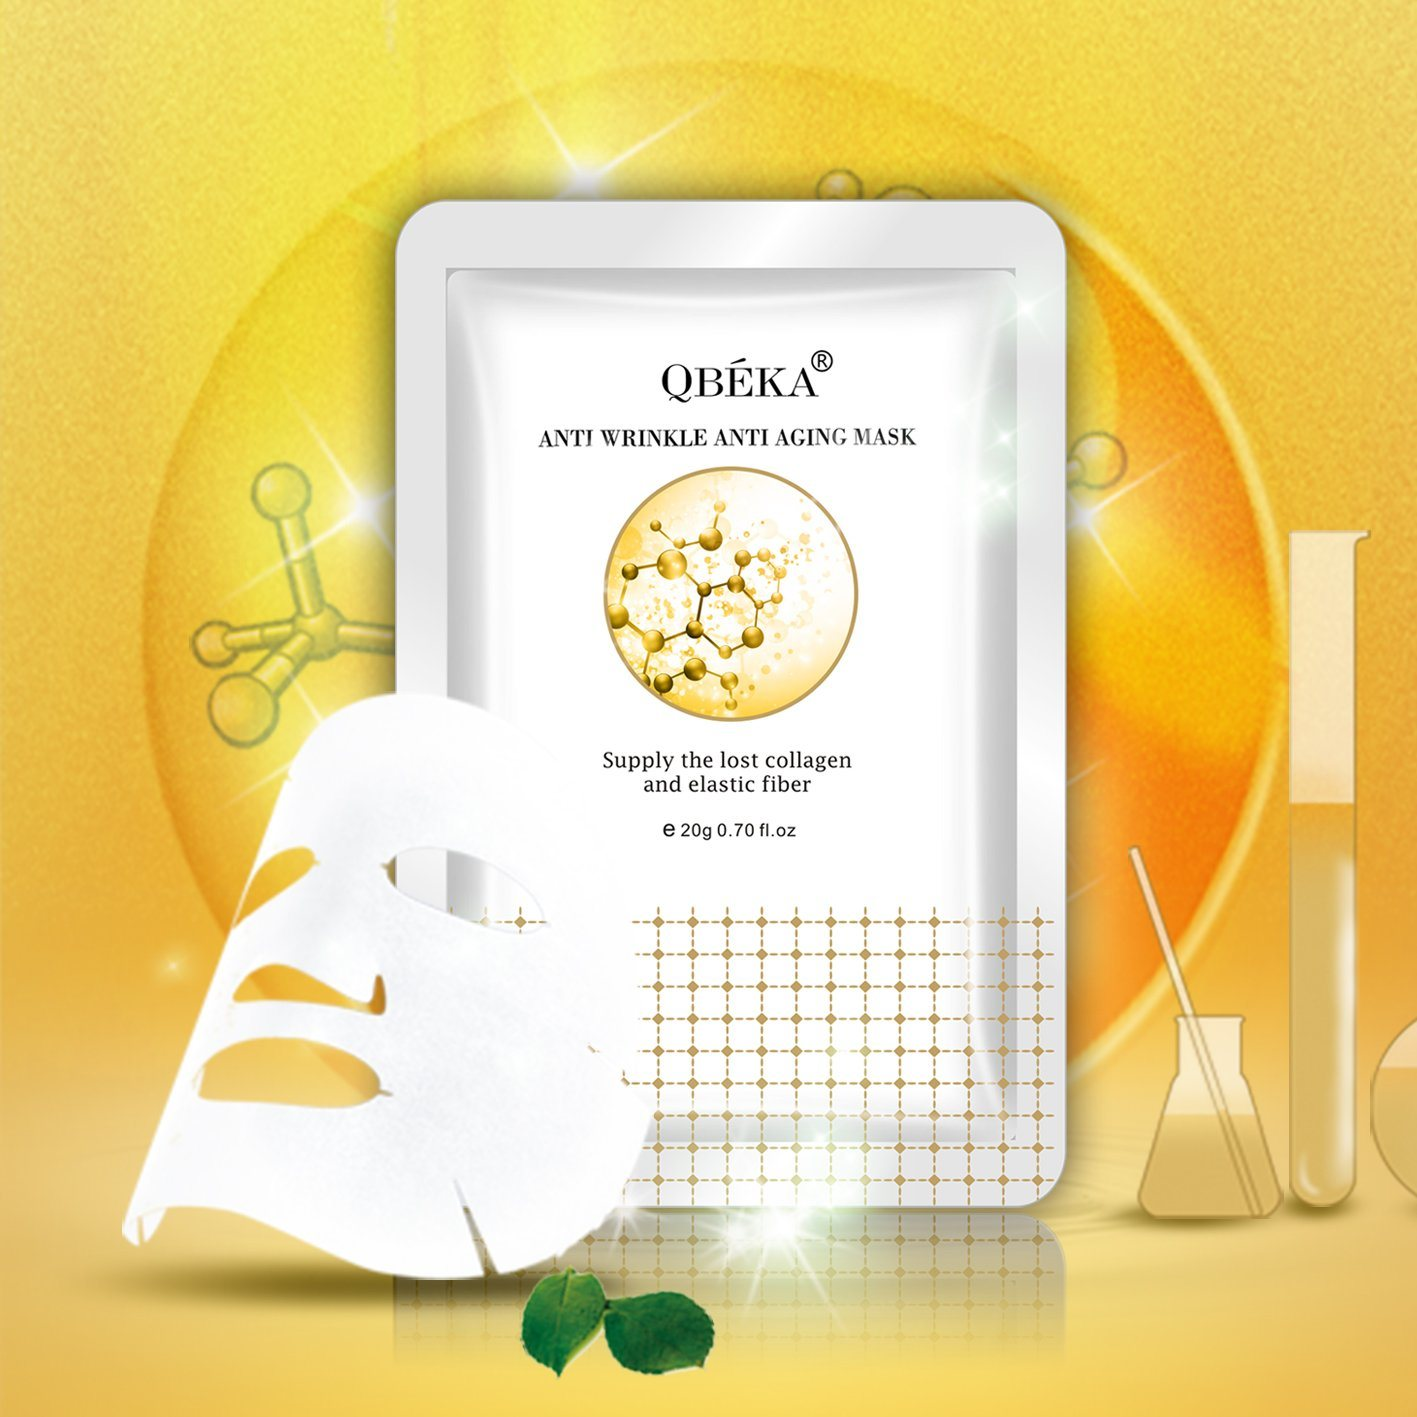 OEM QBEKA Anti Wrinkle Anti Aging Mask Private Label Face Mask Wrinkle Lifting Face Mask